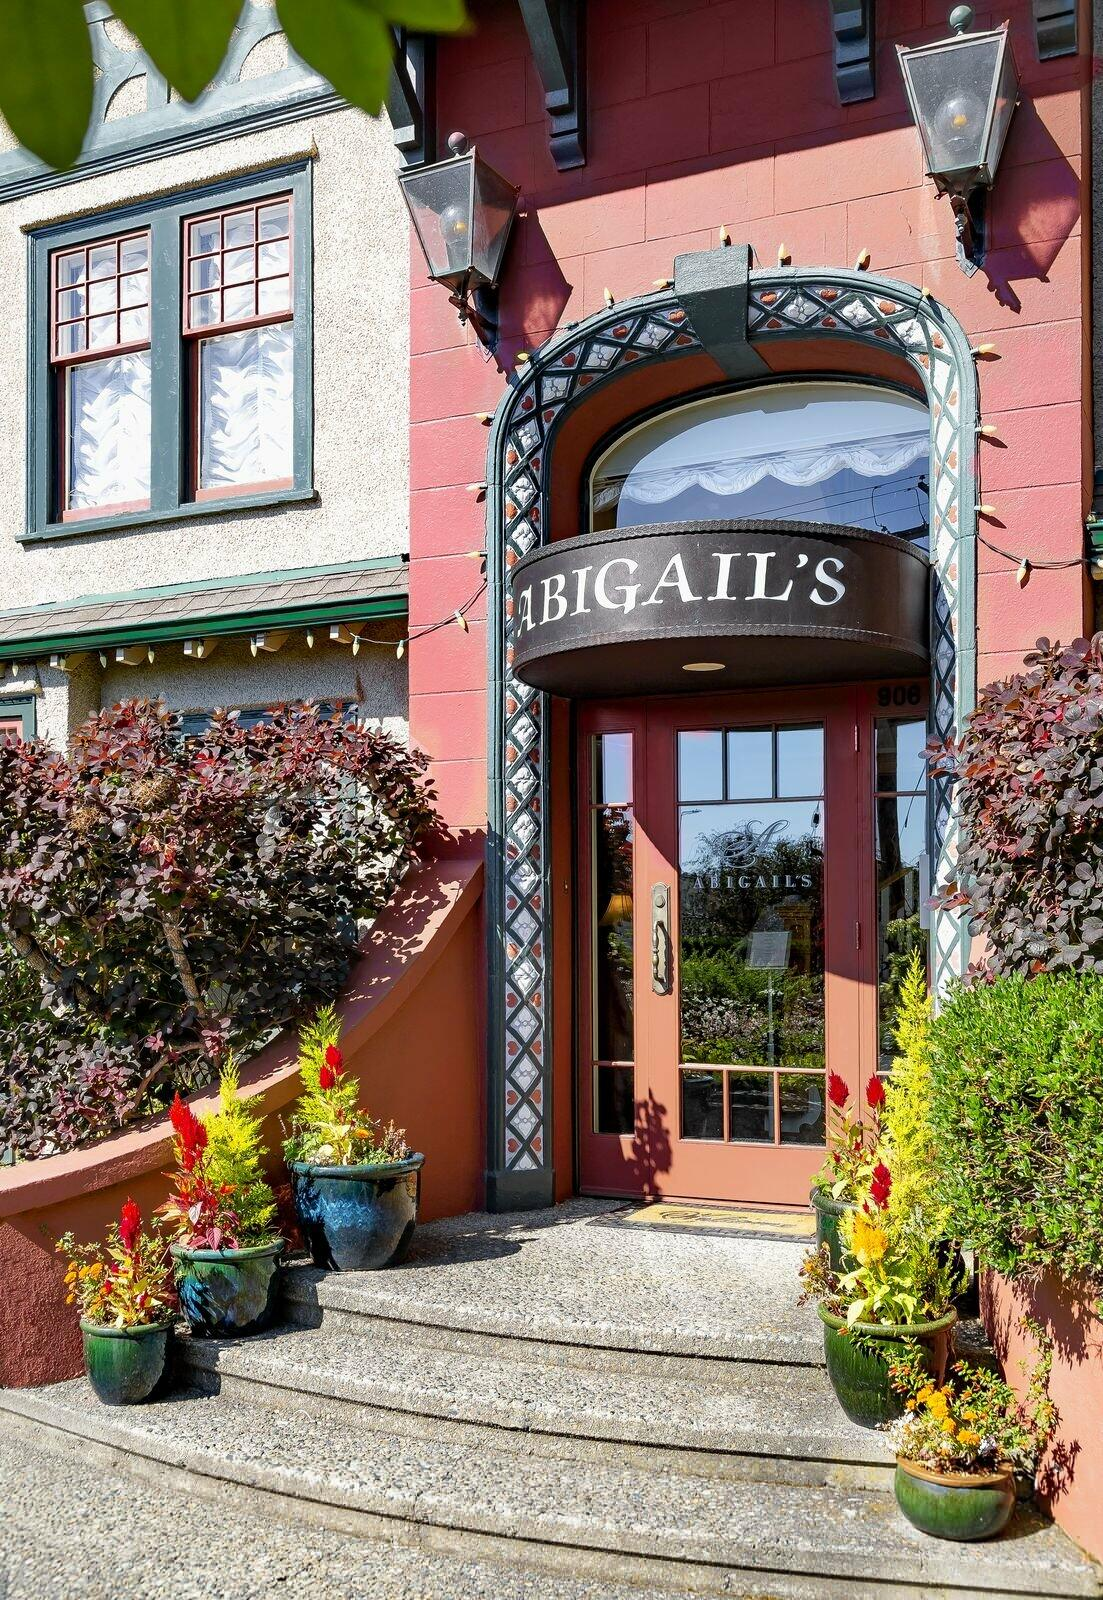 Steps to front entrance of Abigail's Hotel